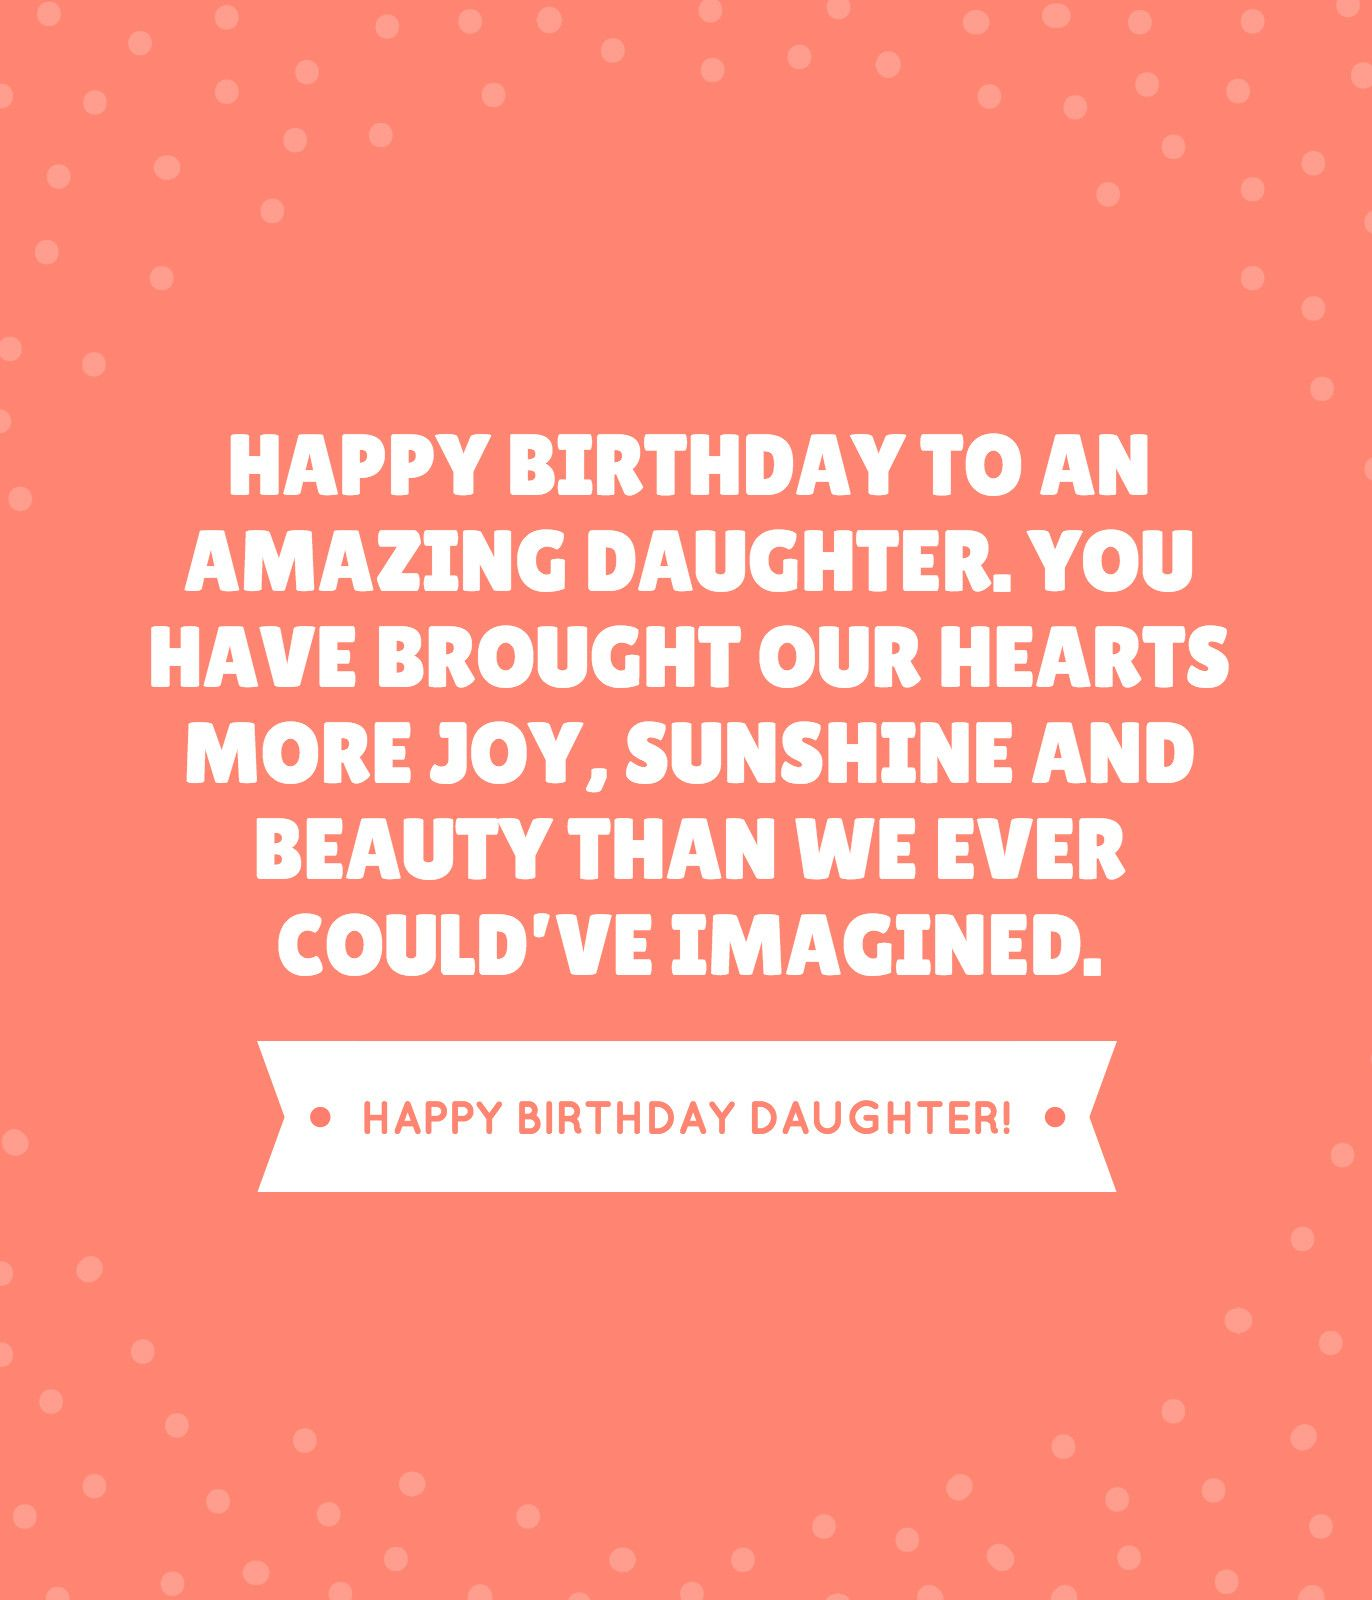 Happy Birthday Daughter Best 20 Quotes For Daughters Birthday Happy Birthday Quotes For Daughter Birthday Quotes For Daughter Poem For Grandma Birthday